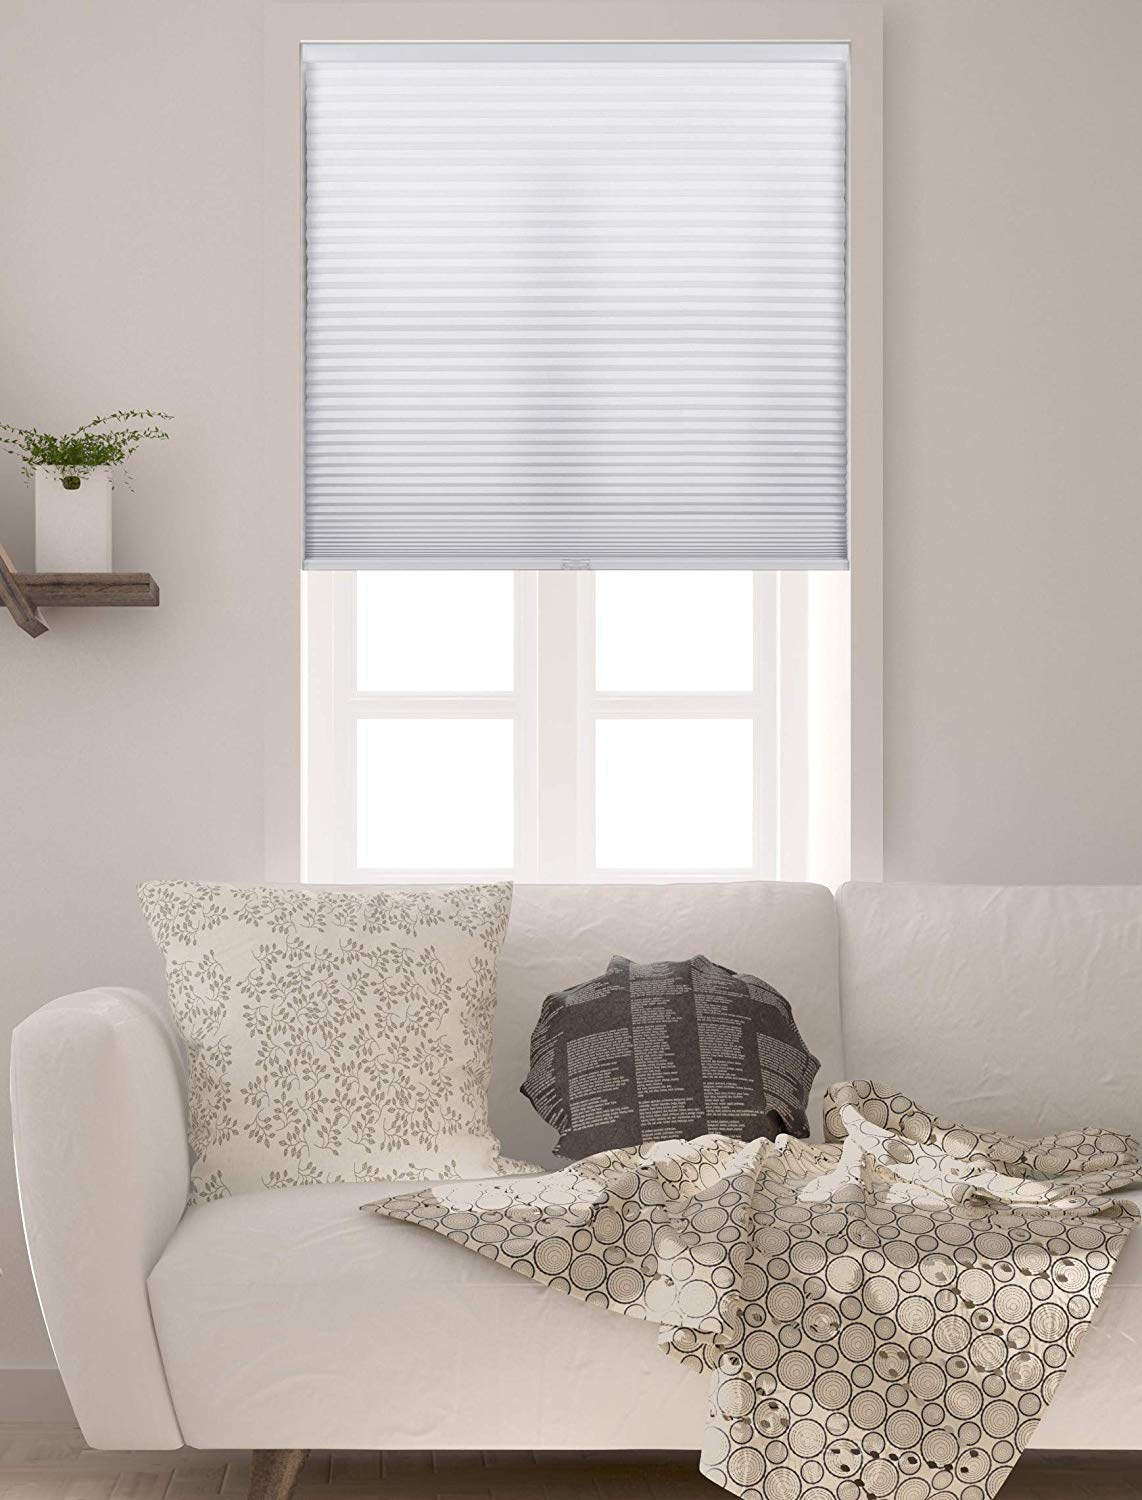 Arlo Blinds Single Cell Cellular Shades, Colour